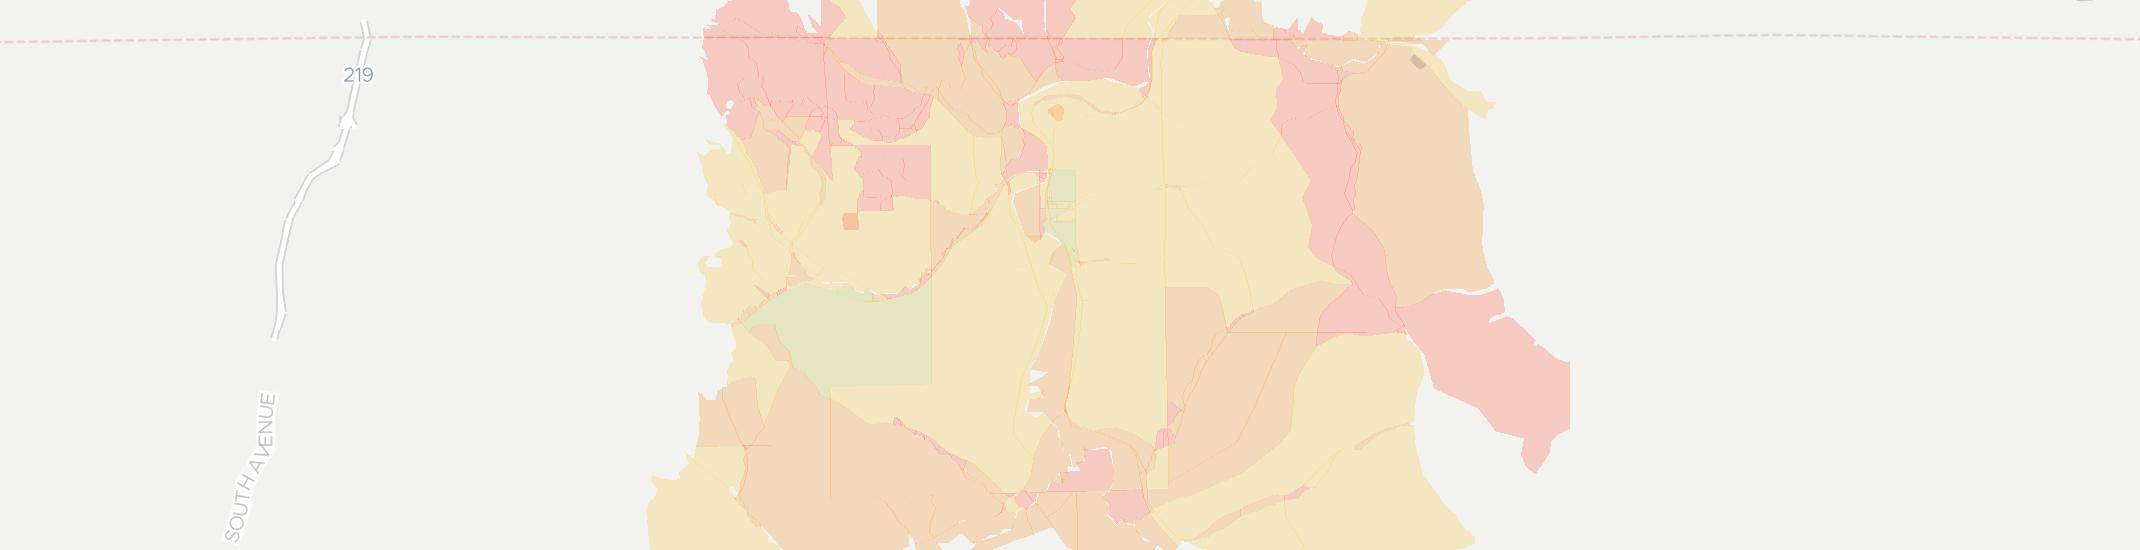 Eldred Internet Competition Map. Click for interactive map.